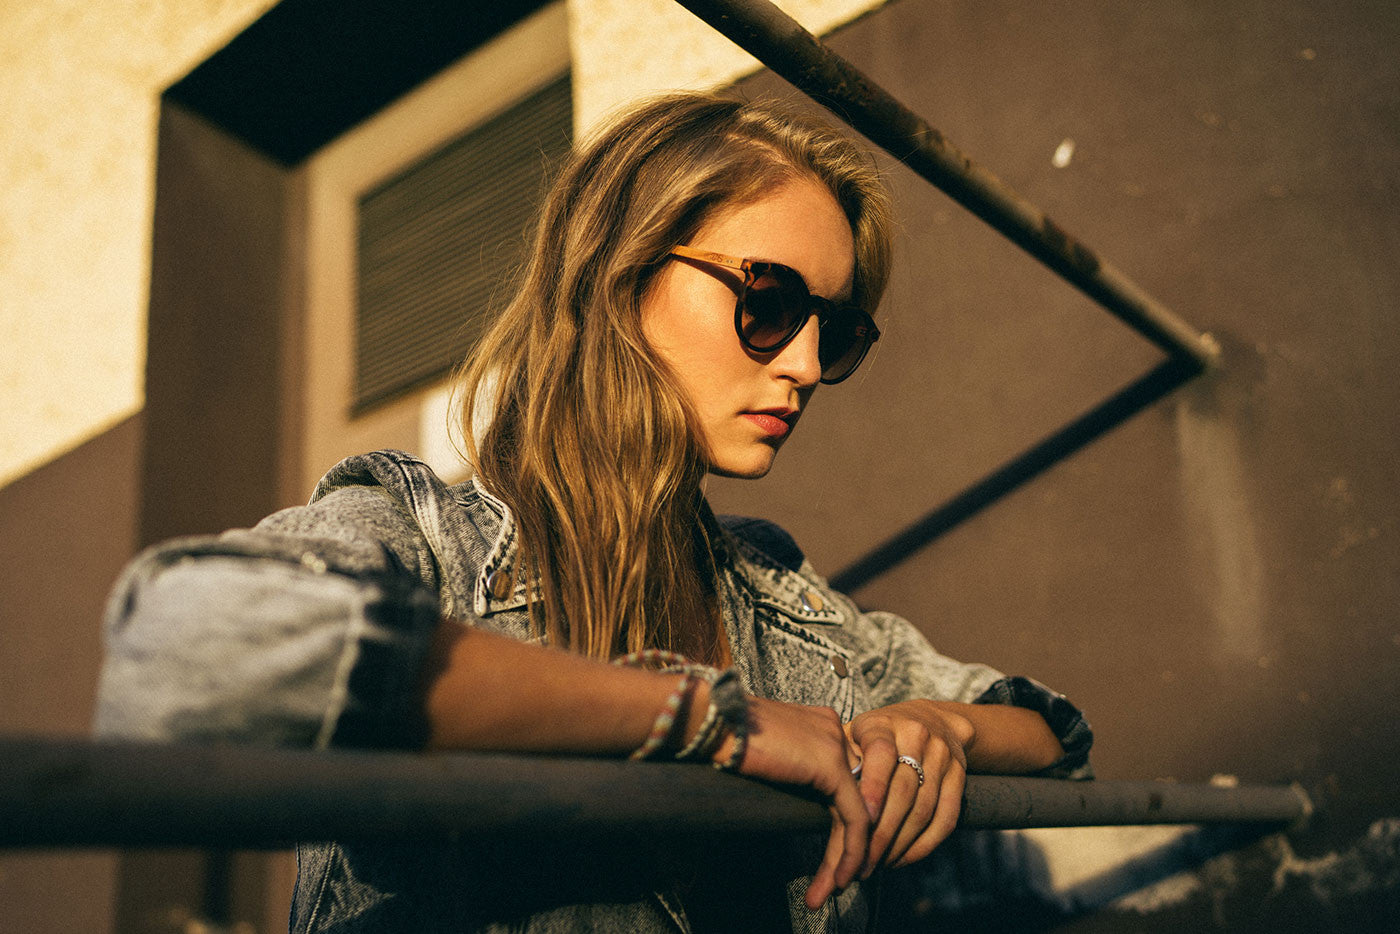 Emma Kirschholz Sonnenbrille Girl havana pink TAKE A SHOT Lookbook